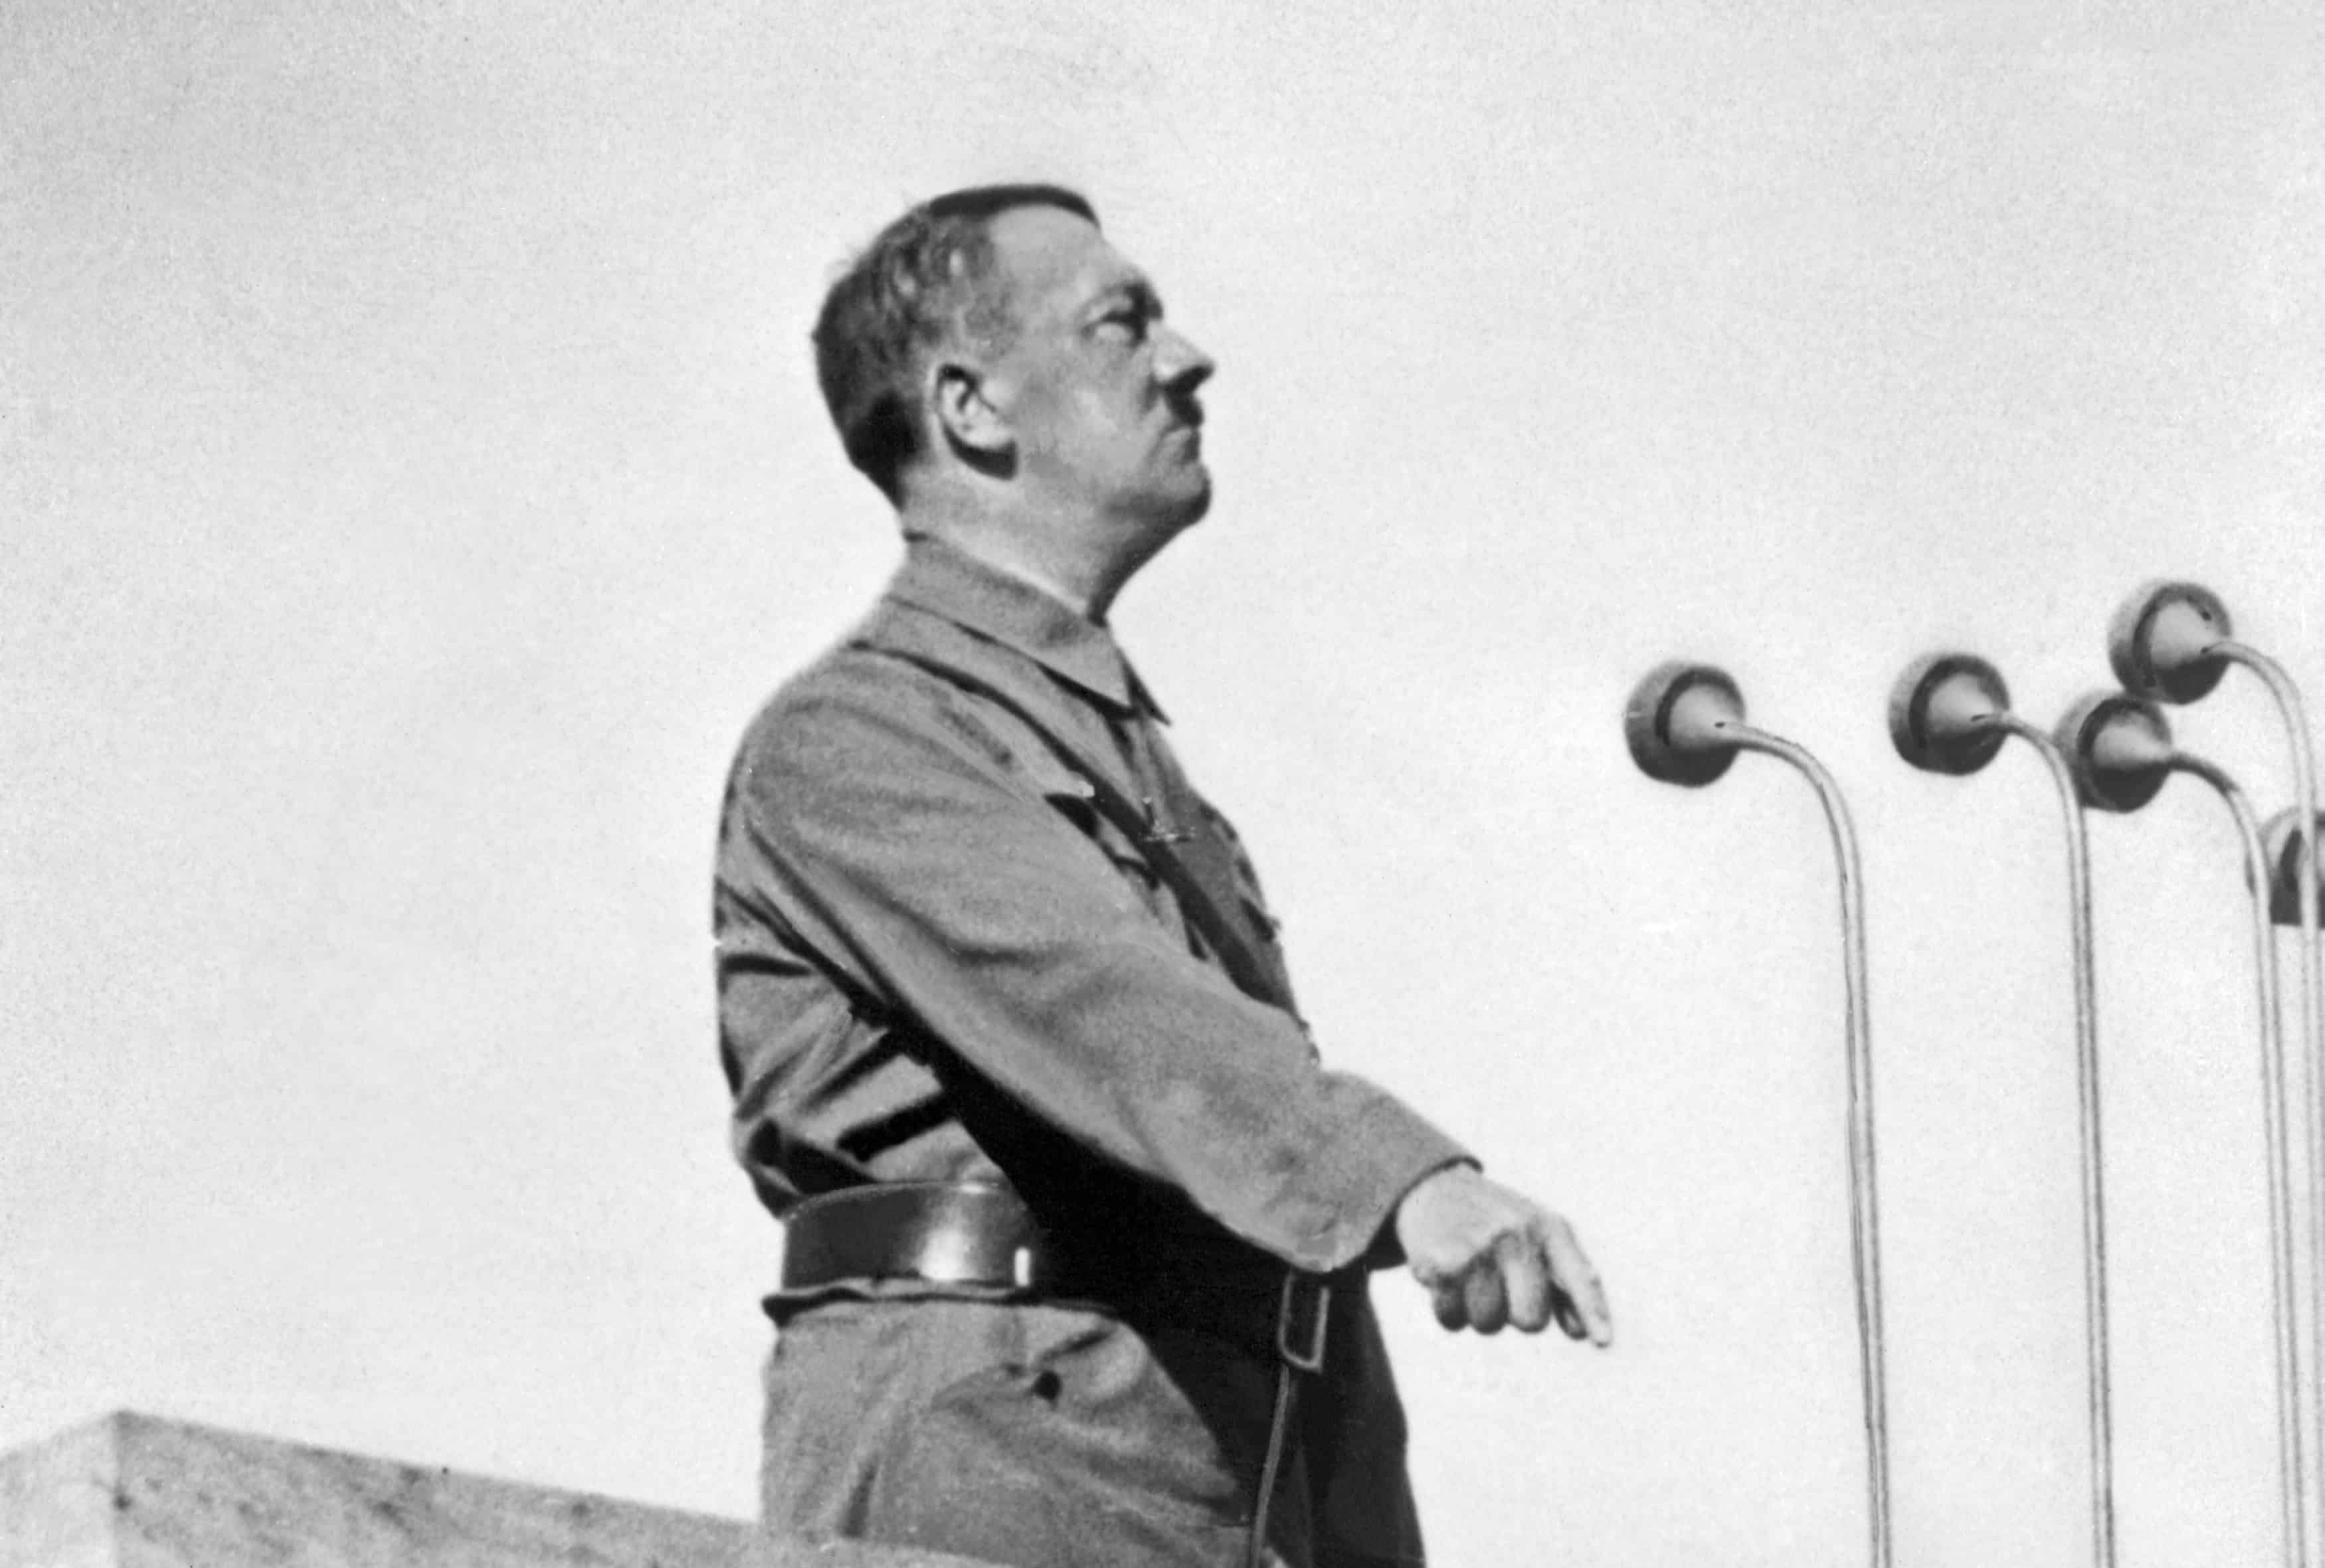 WorldViews on High Hitler: Nazi leader was a meth addict